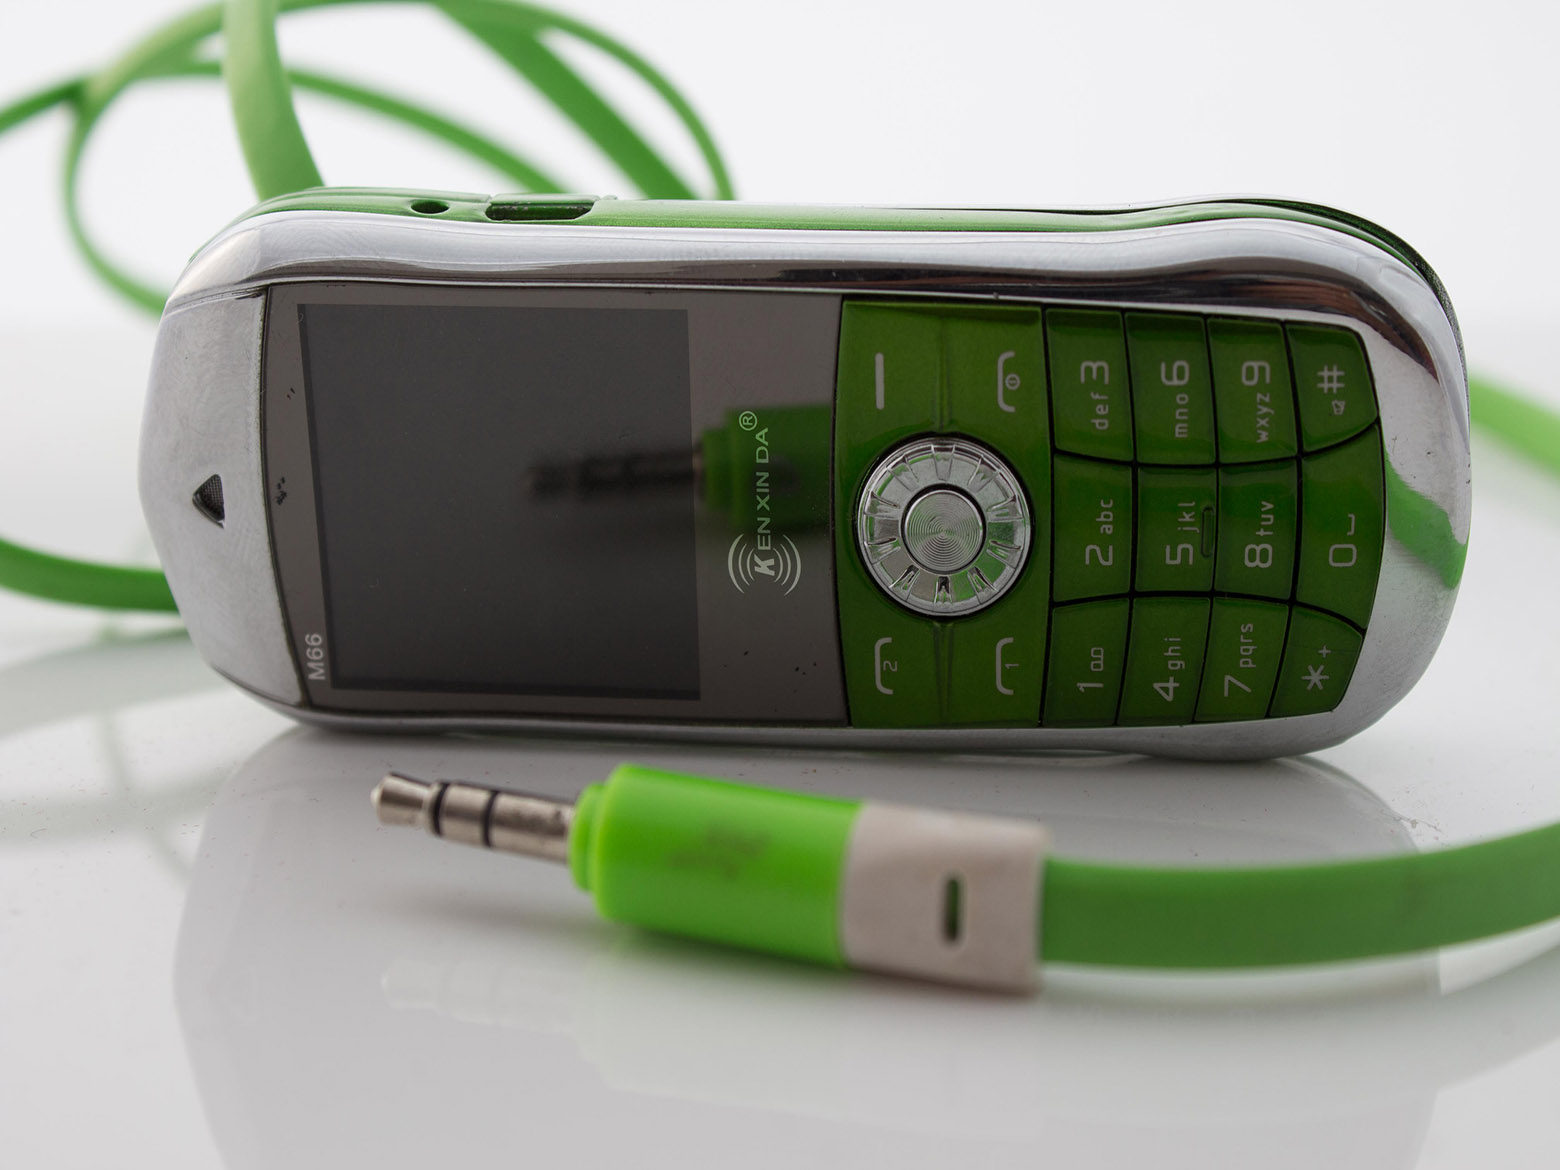 MOBILE PHONE WITH CABLE